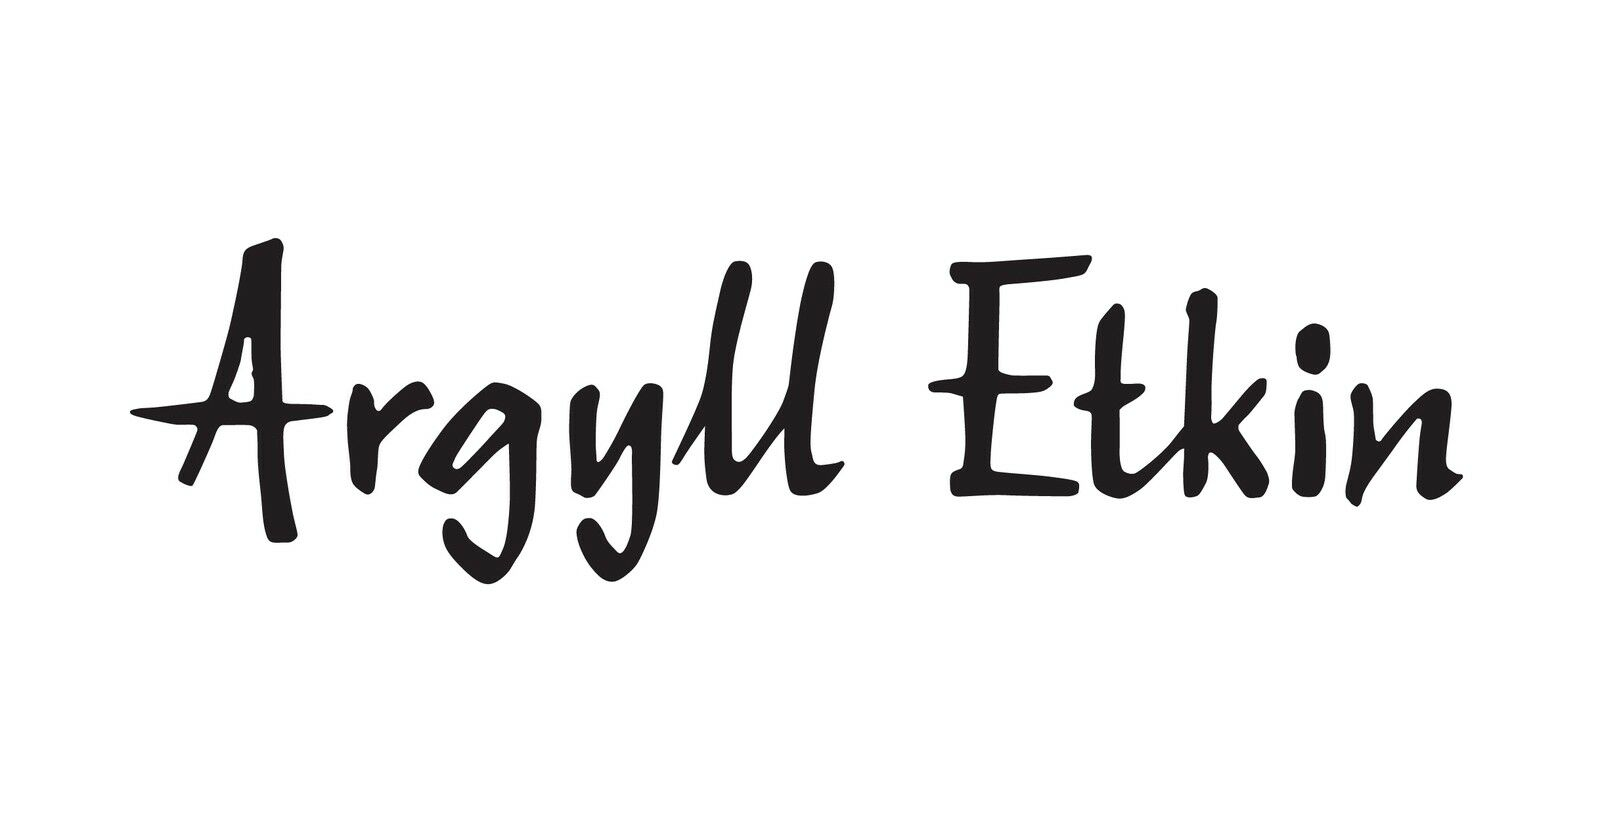 ROYALTY HISTORY AT ARGYLL ETKIN